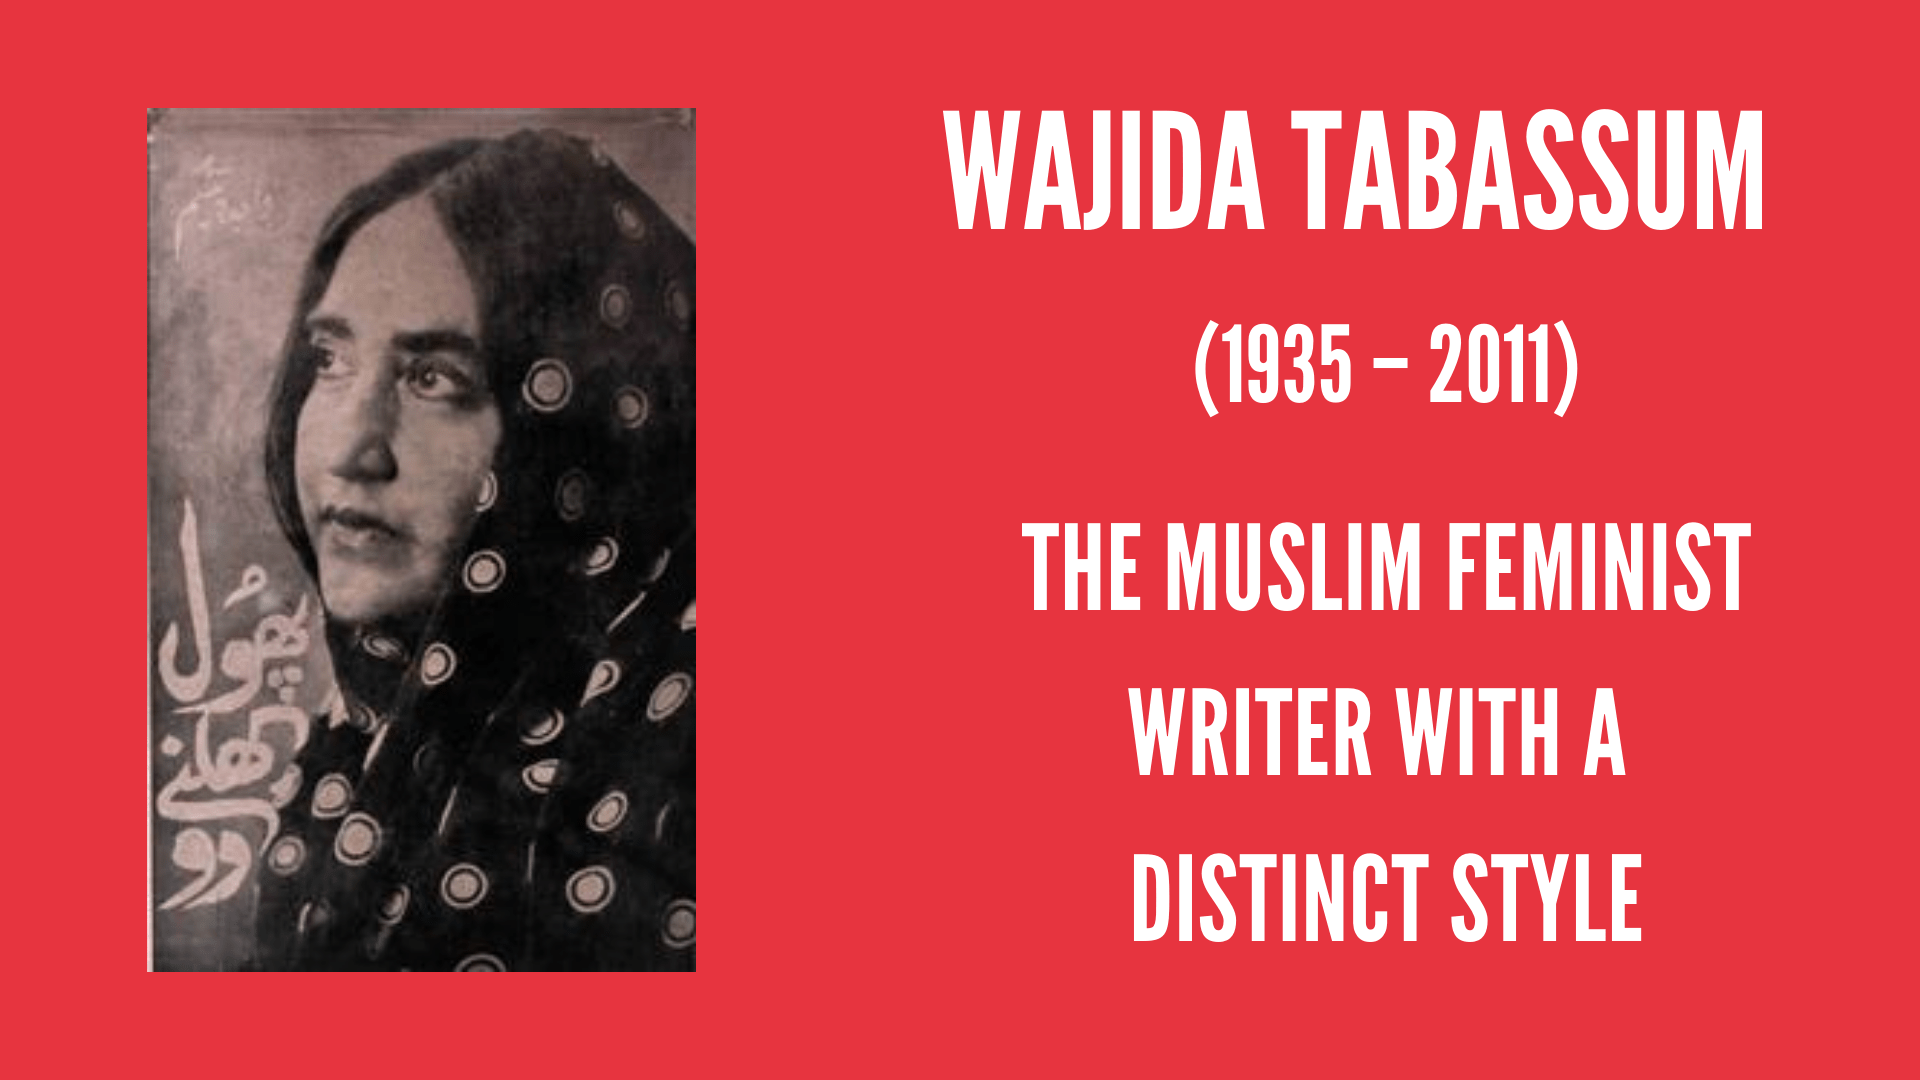 Wajida Tabassum: The Muslim Feminist Writer With A Distinct Style| #IndianWomenInHistory